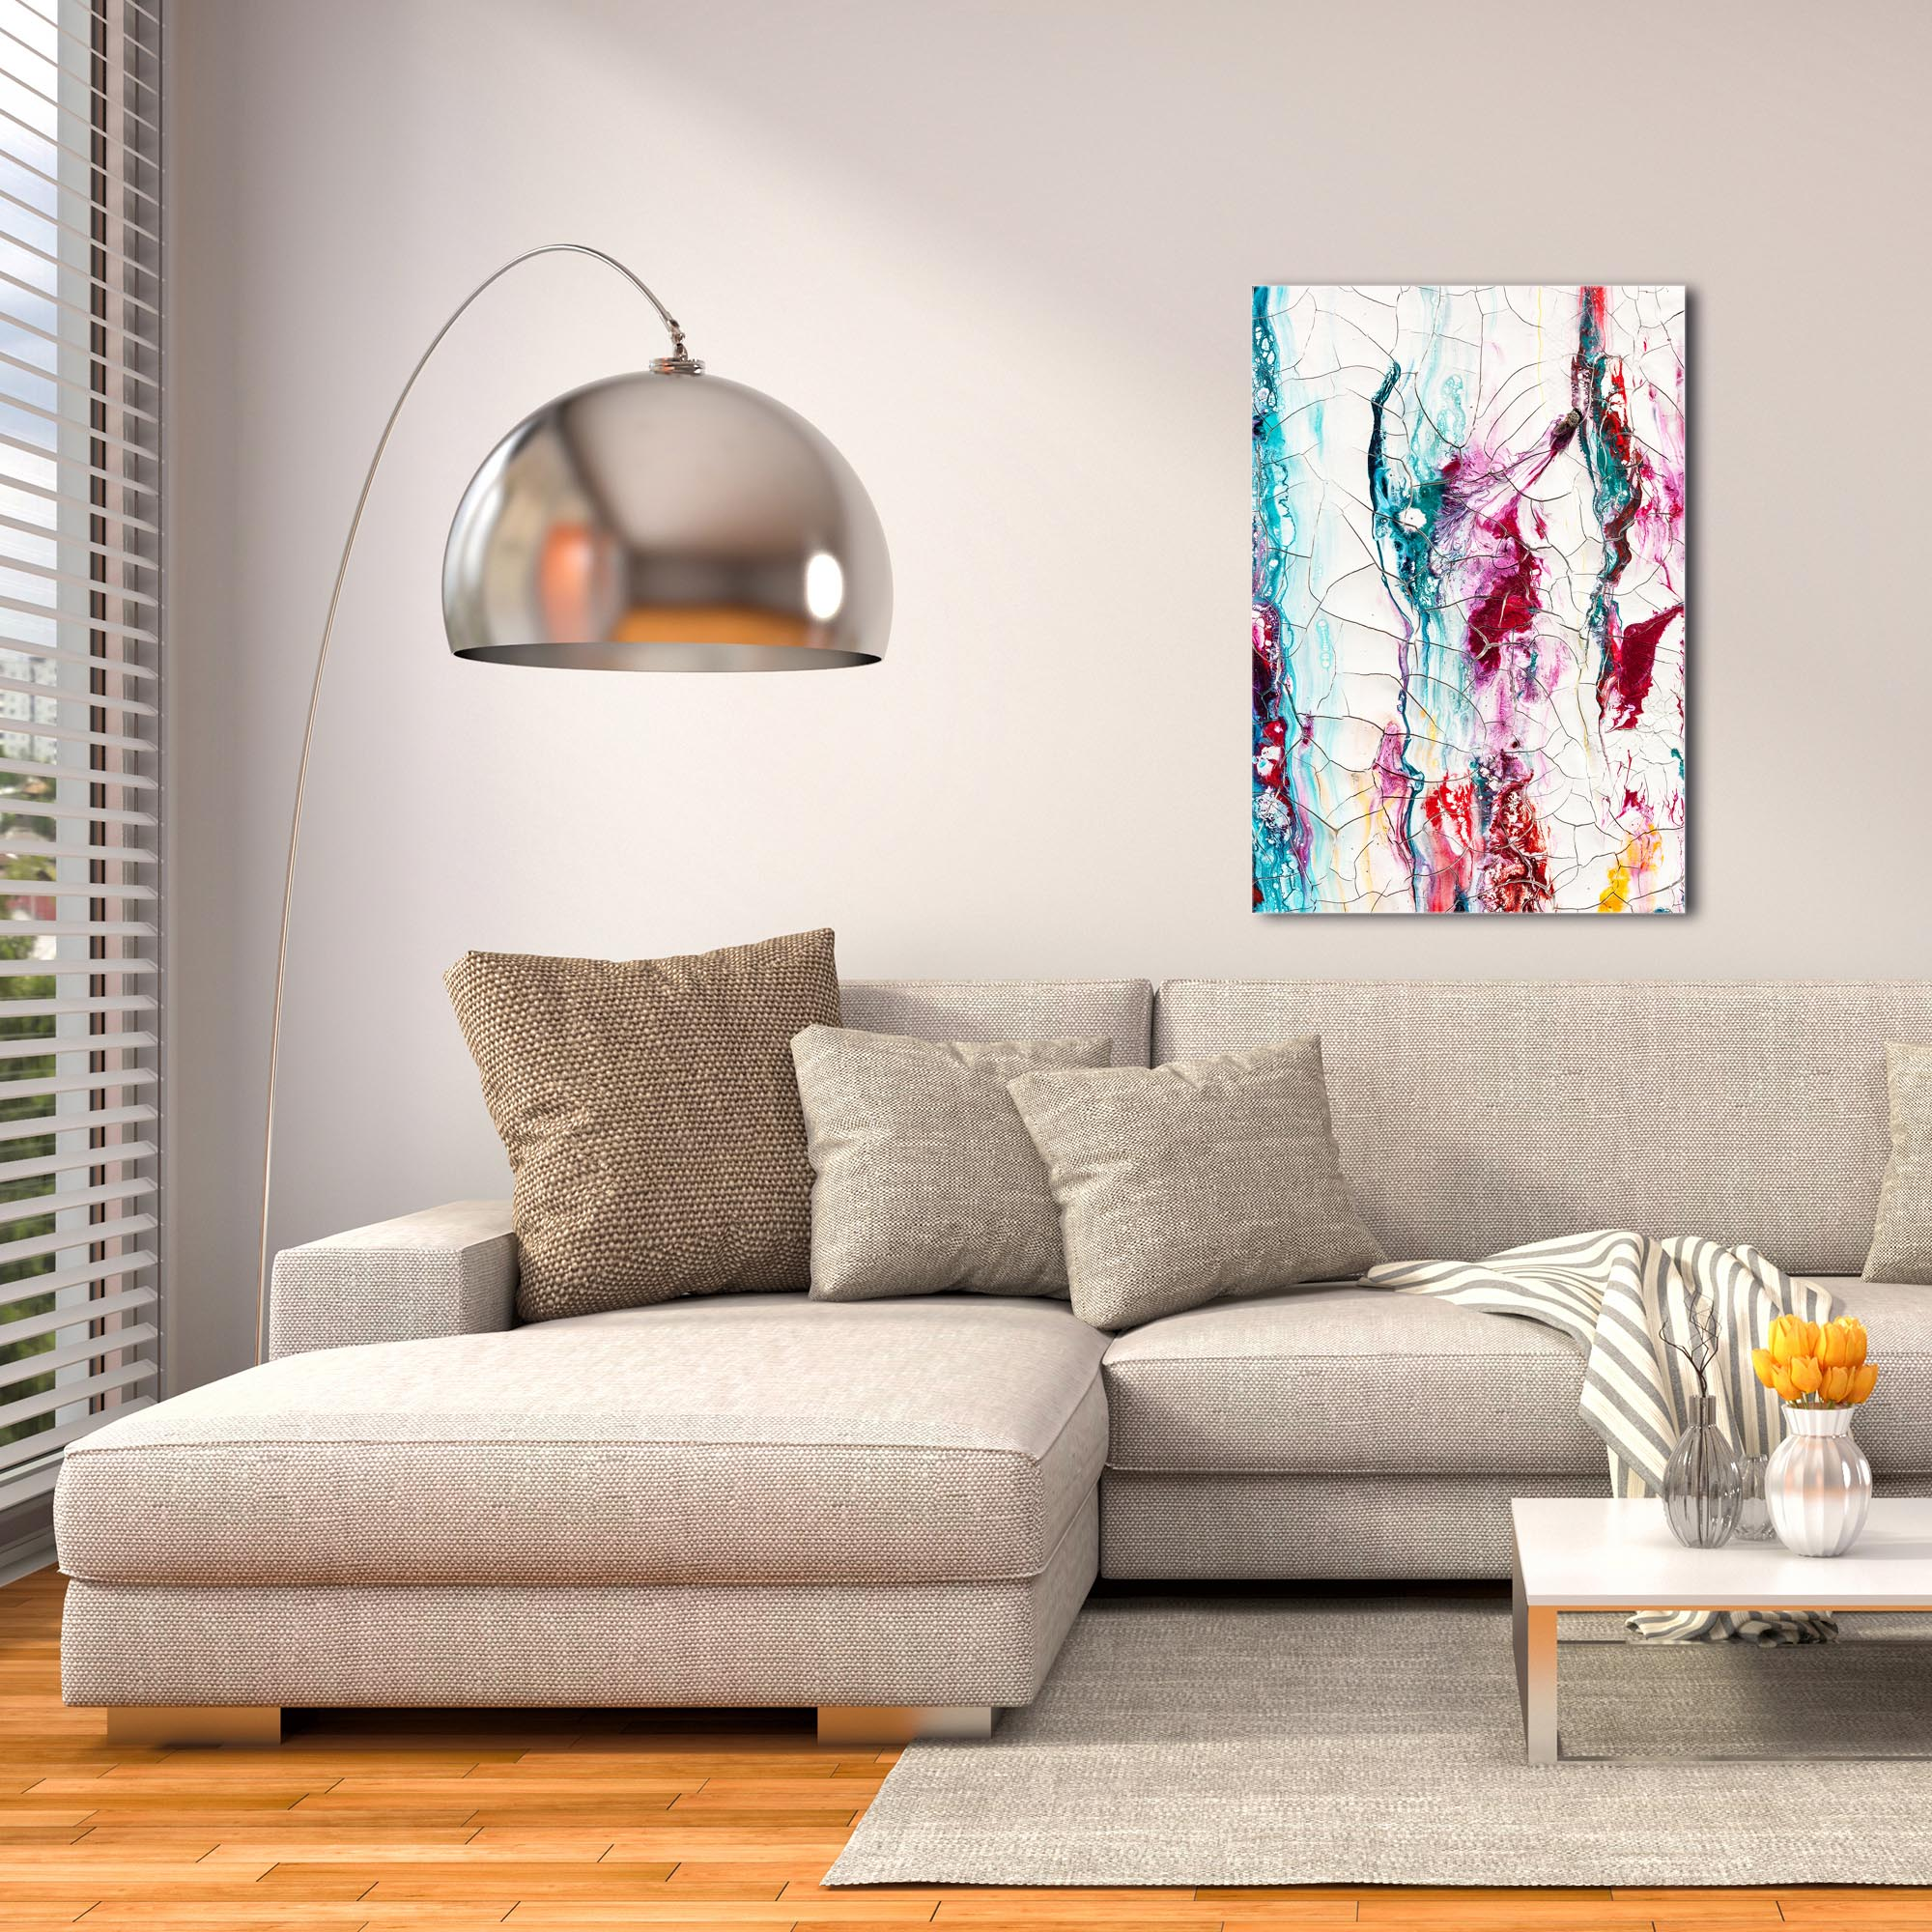 Abstract Wall Art 'Collateral Damage 3' - Colorful Urban Decor on Metal or Plexiglass - Image 3